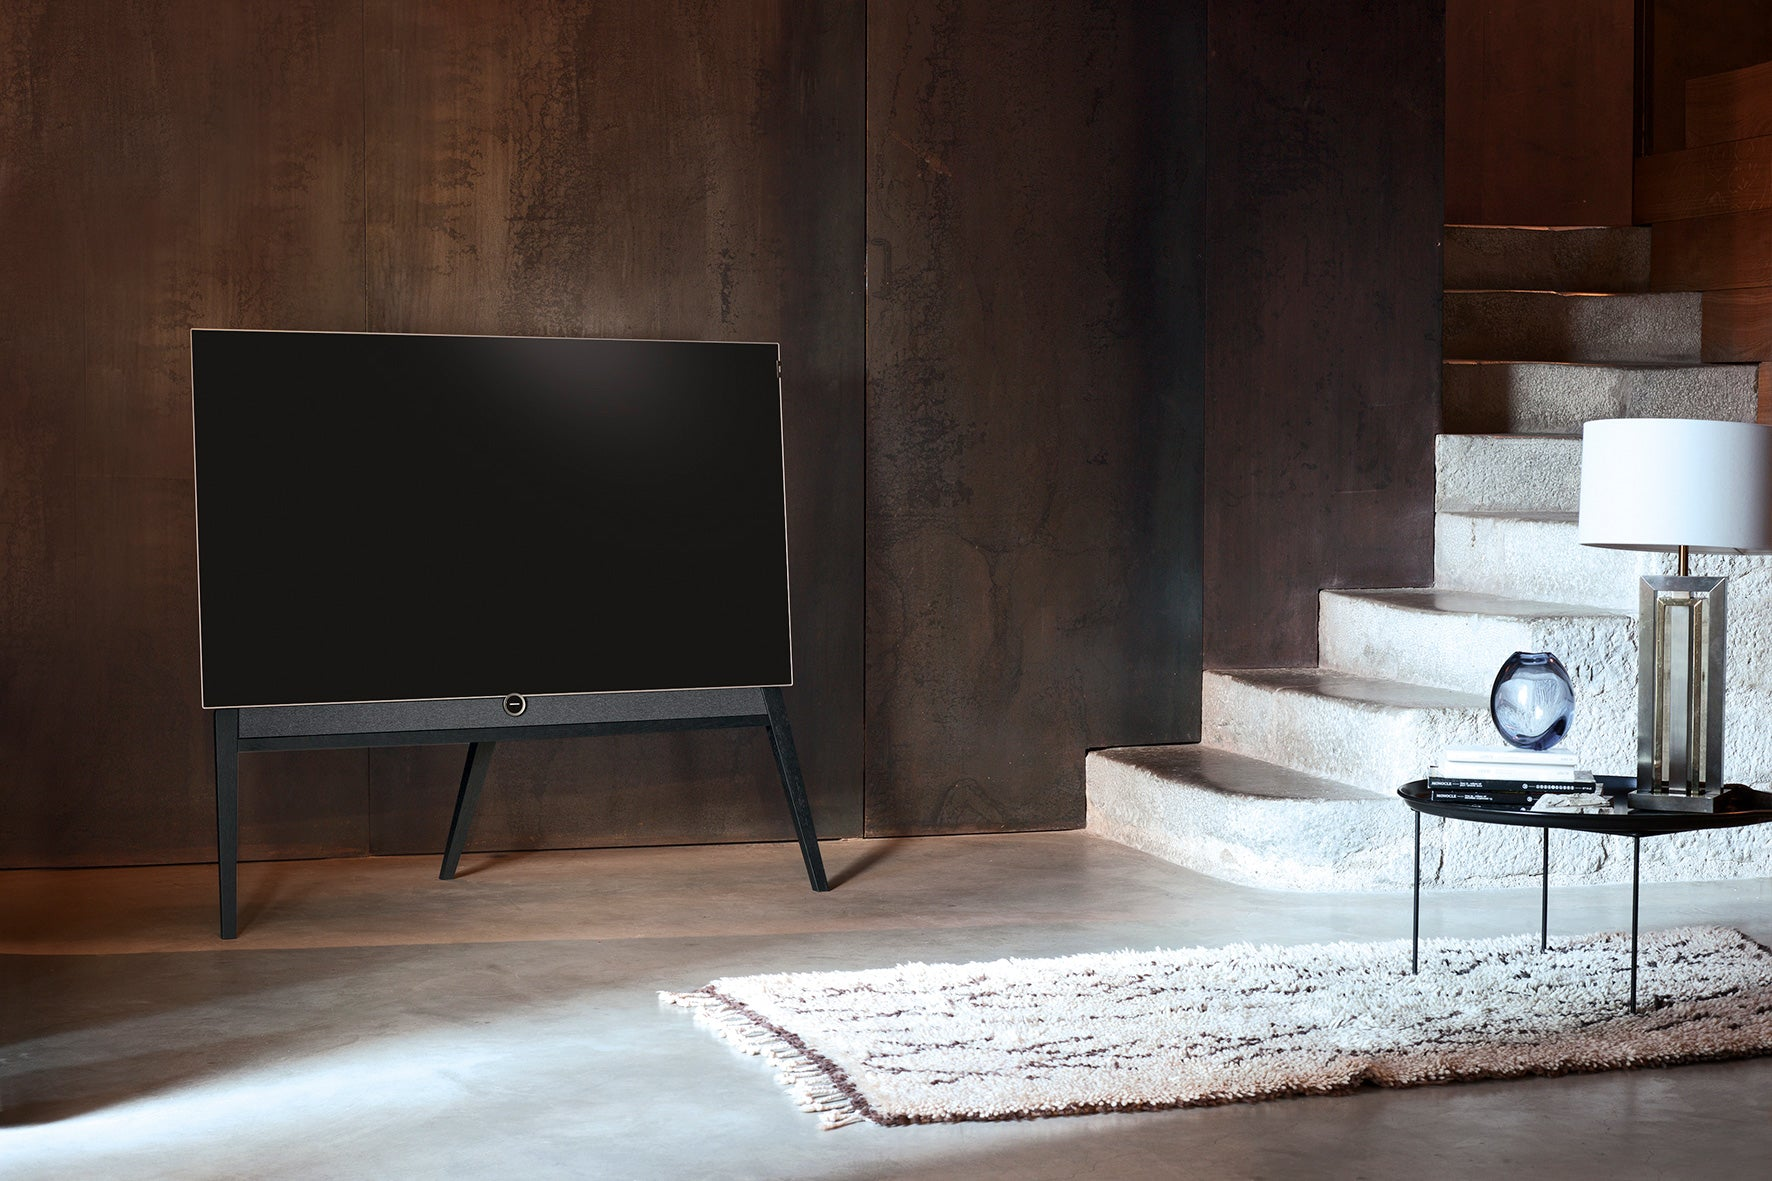 Loewe bild 5 OLED Floorstand Television Technology design by Bodo Sperlein